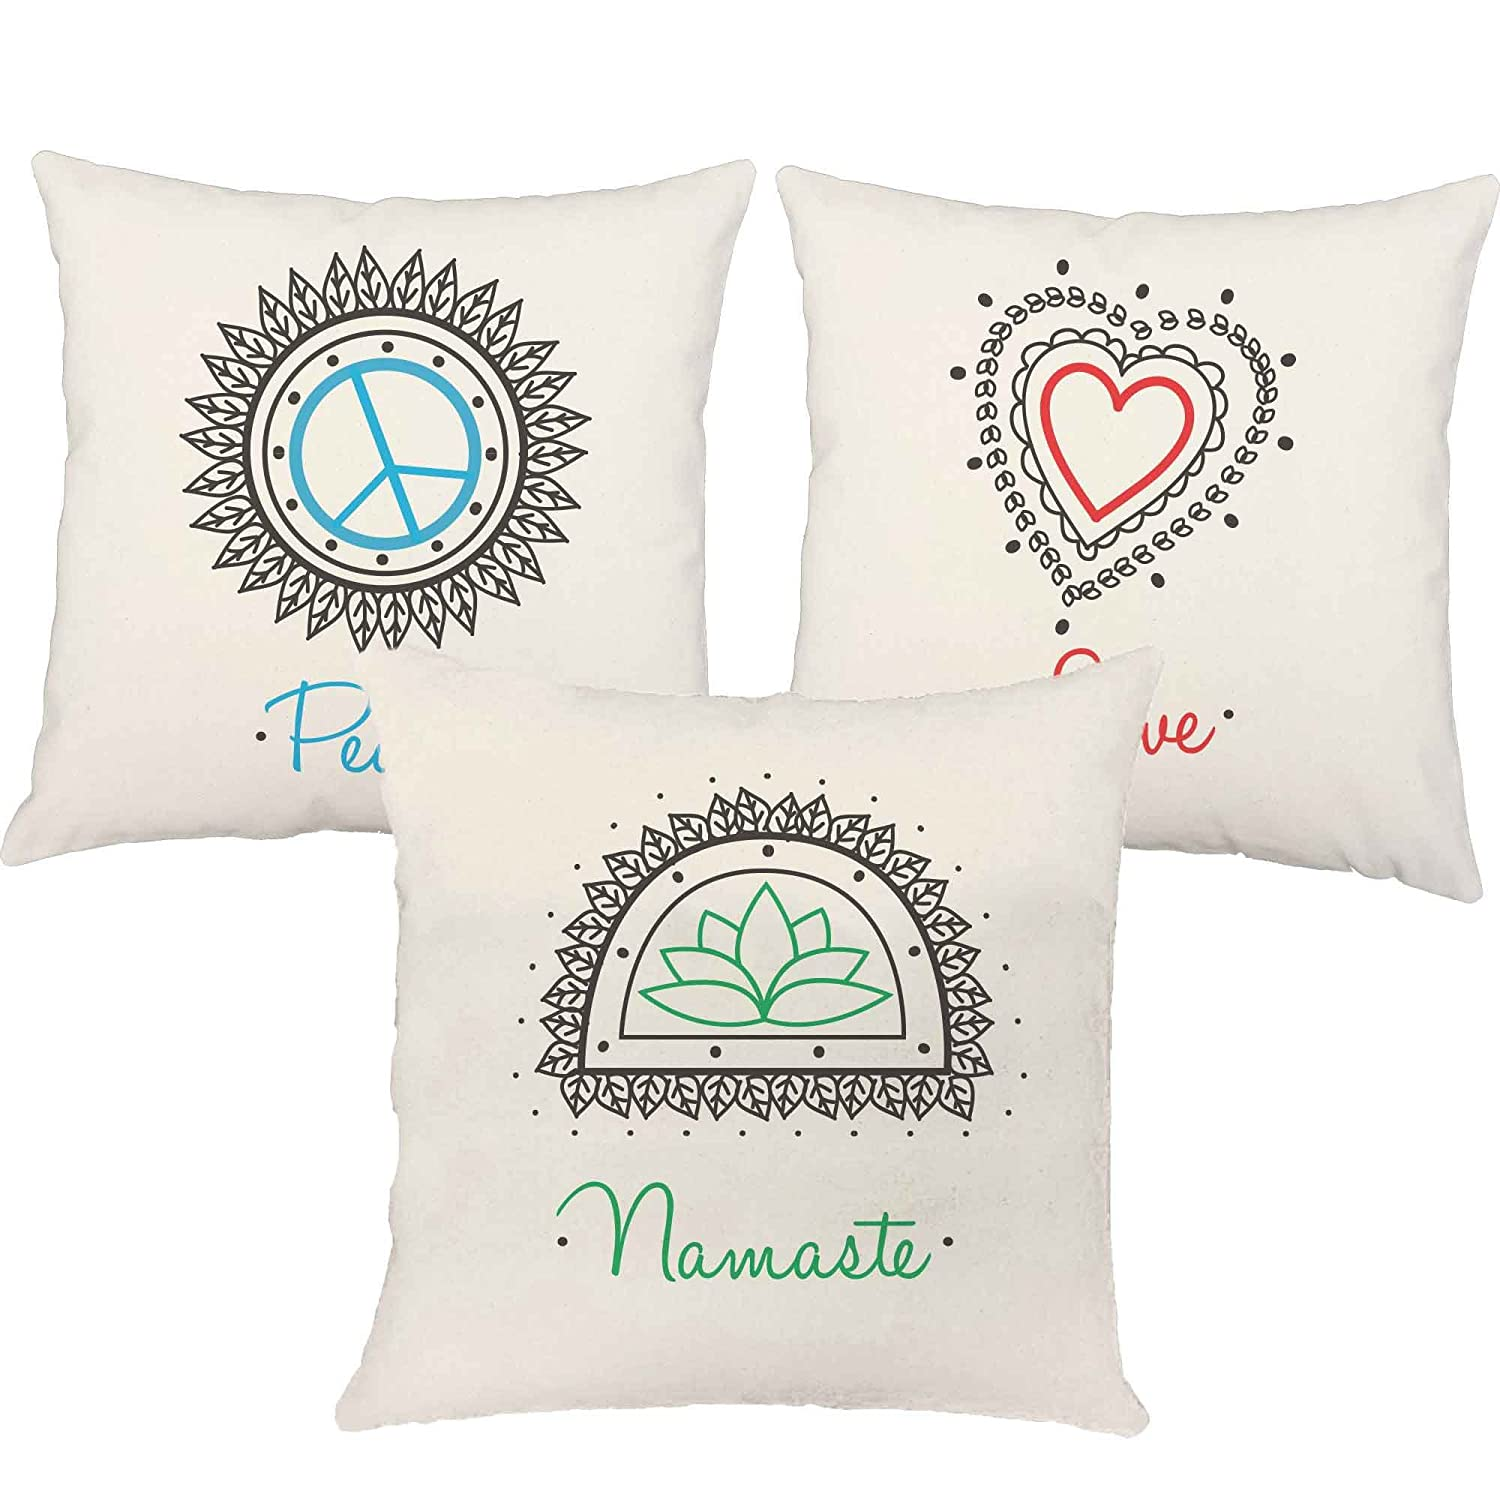 RoomCraftヨガスロー枕カバー/クッション 20x20 inches - Covers and Pillows P5S3-W-1-186-20 20x20 inches - Covers and Pillows Namaste - White Indoor B016YS8L5M